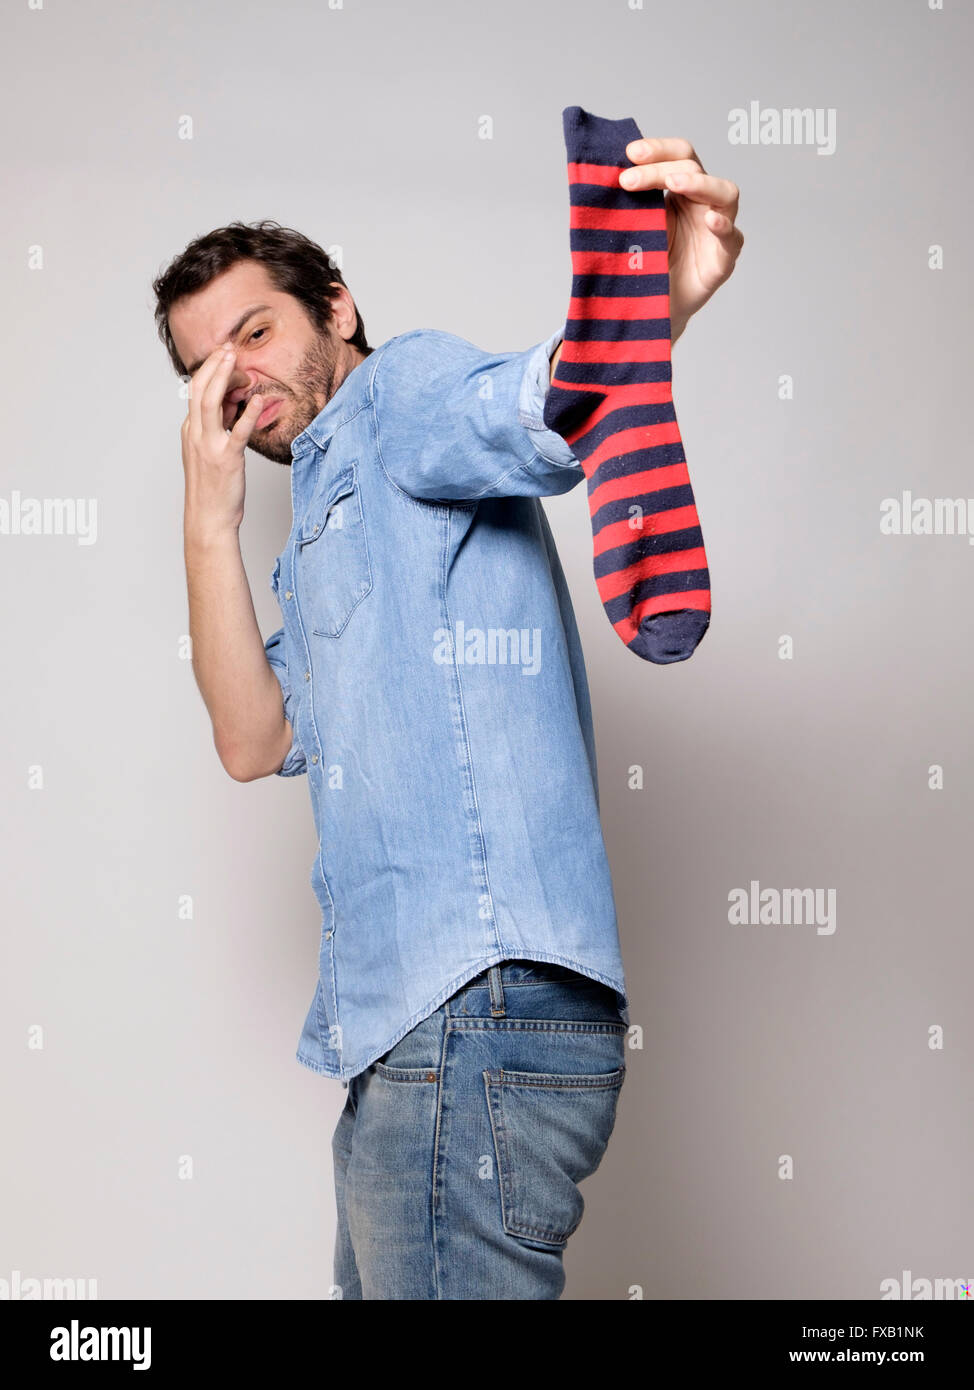 Man smelling a stinky sock - Stock Image